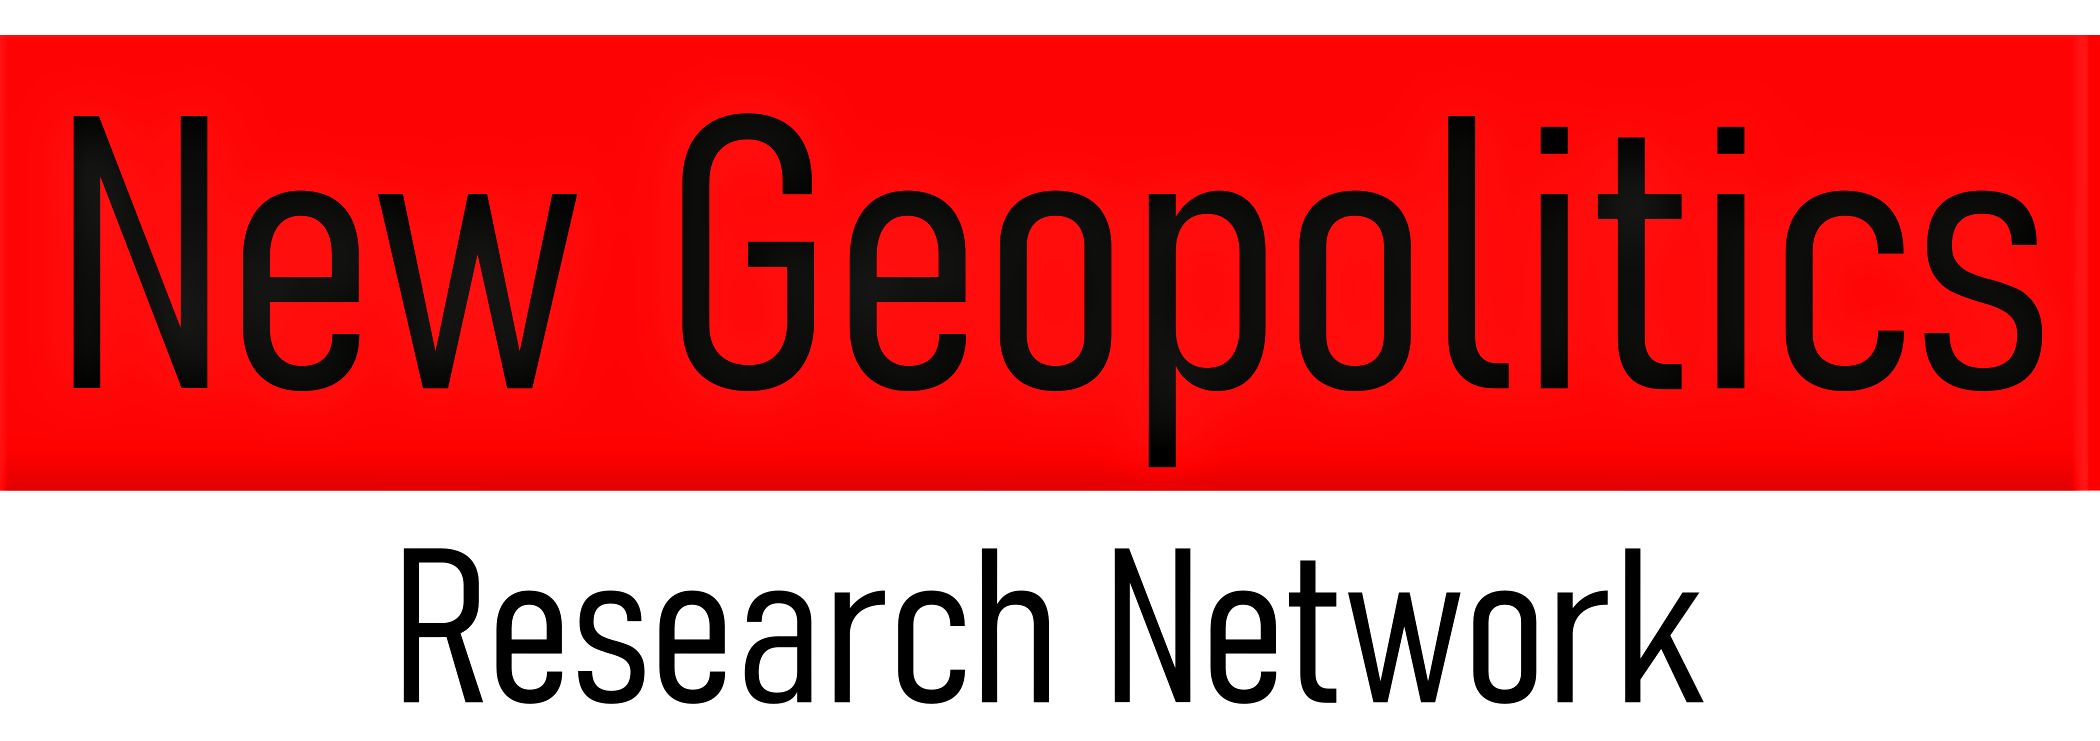 New Geopolitics Research Network